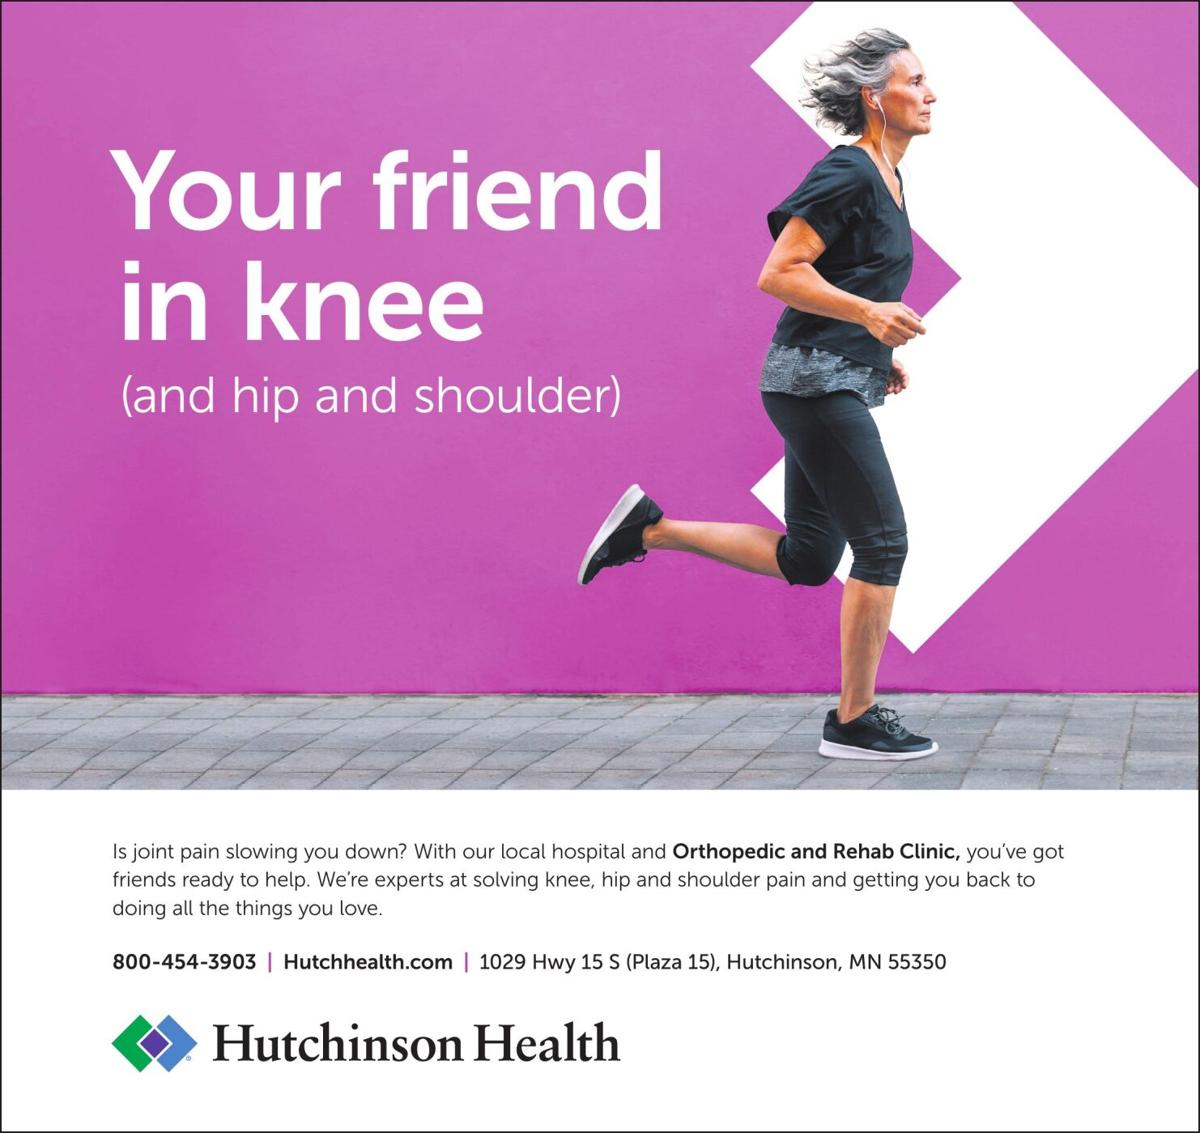 Your friend in knee (and hip and